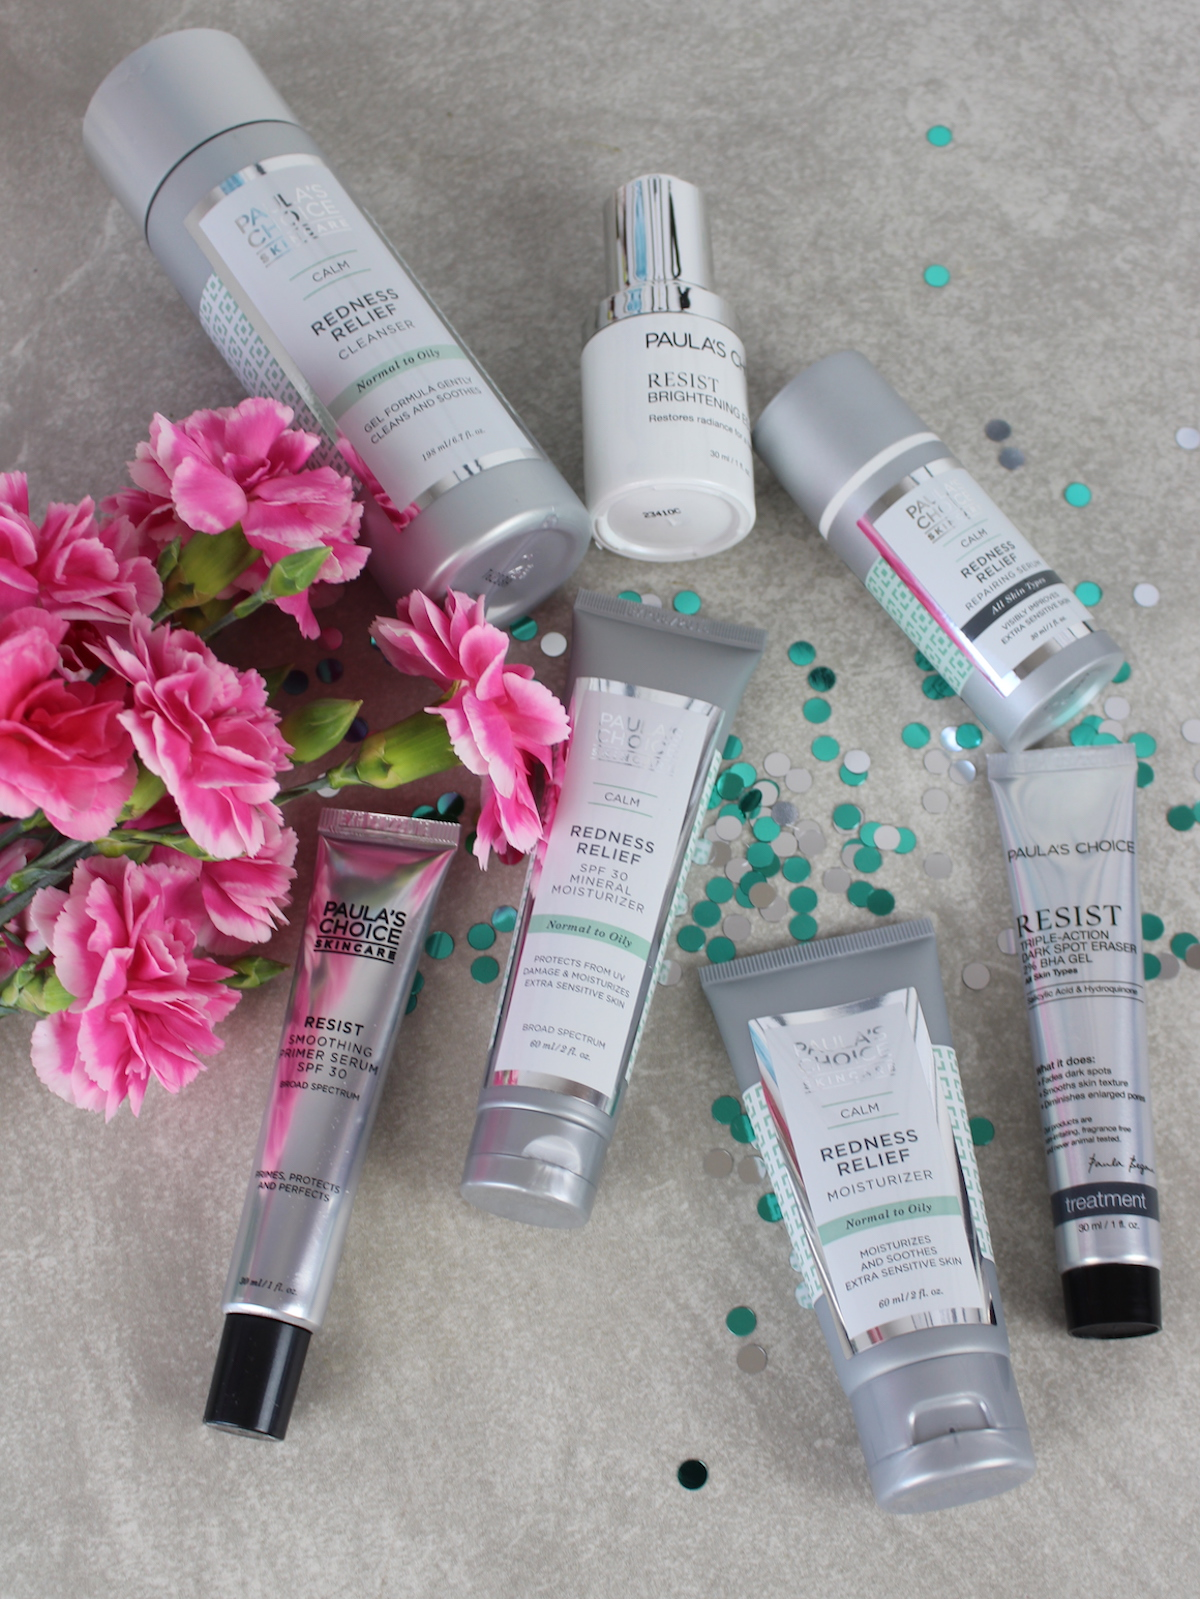 This is a close up of Paula's Choice skin care products for redness and dark spots, surrounded by beautiful pink flowers.